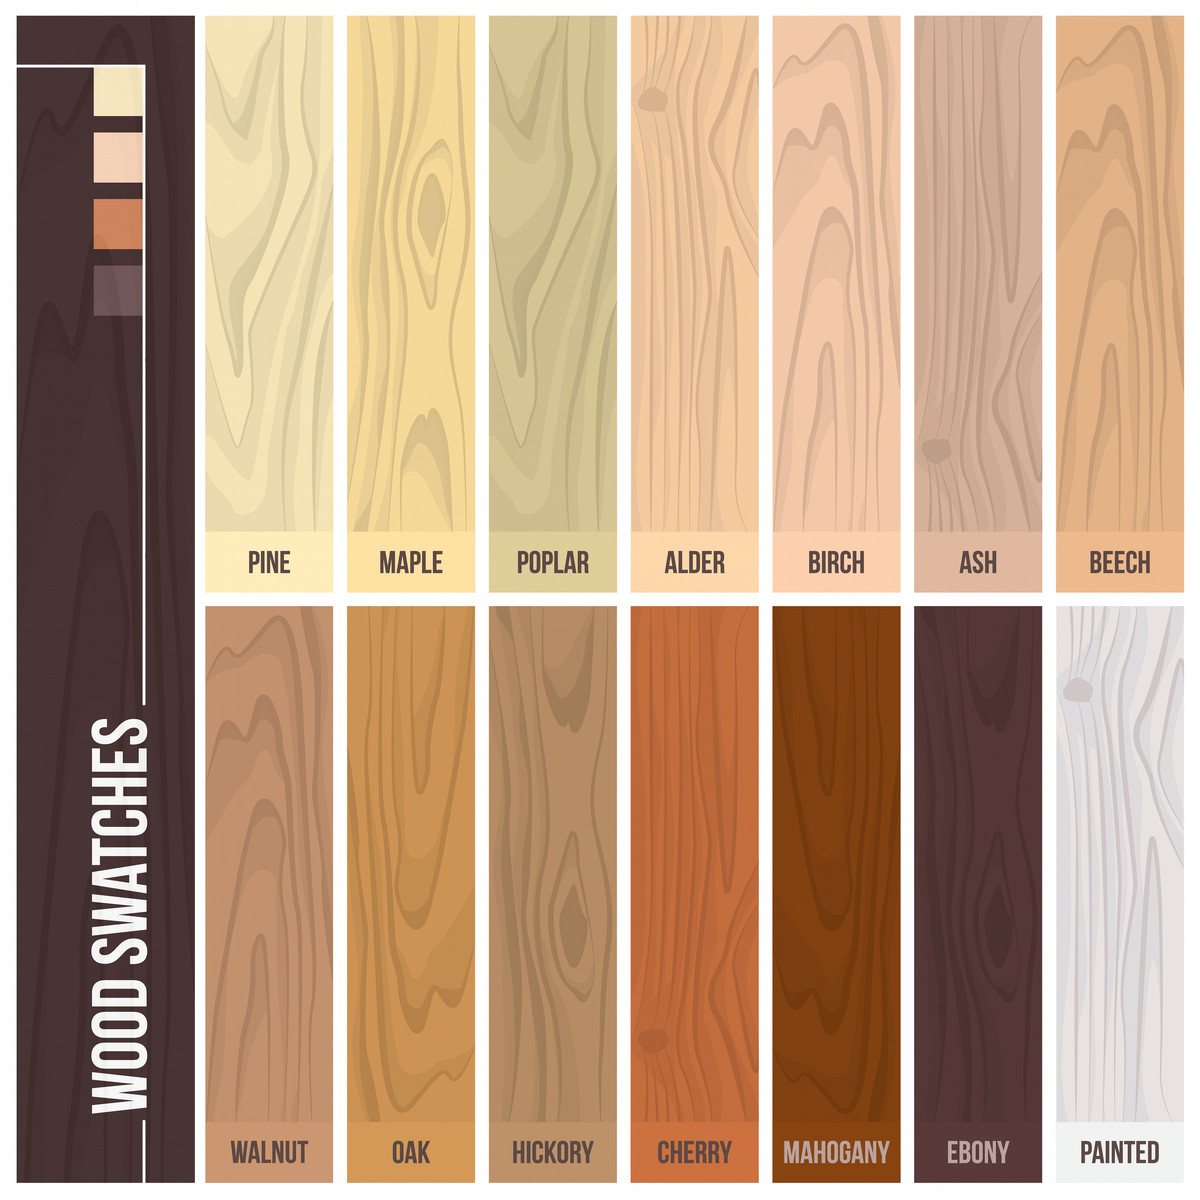 1 1 2 Inch Wide Hardwood Flooring Of 12 Types Of Hardwood Flooring Species Styles Edging Dimensions with Regard to Types Of Hardwood Flooring Illustrated Guide